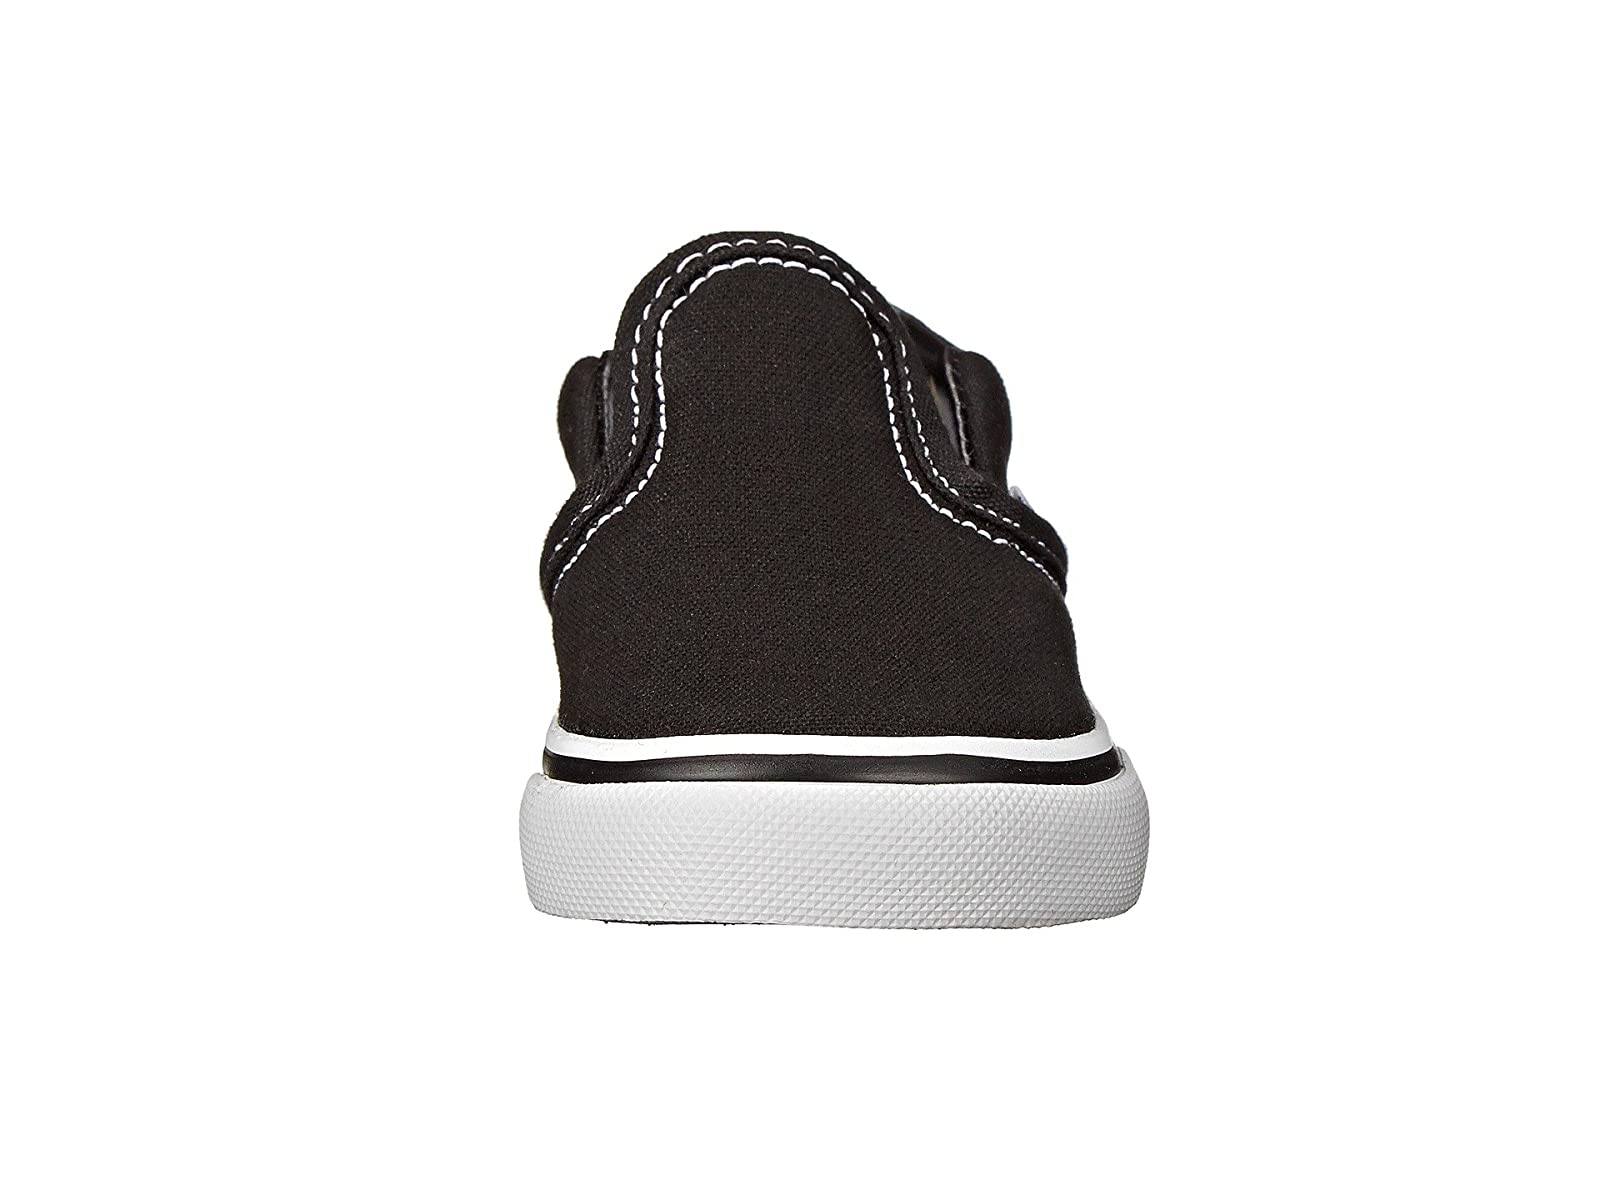 443b7f6b9deab Details about Children Unisex Shoes Vans Kids Classic Slip-On Core (Toddler)